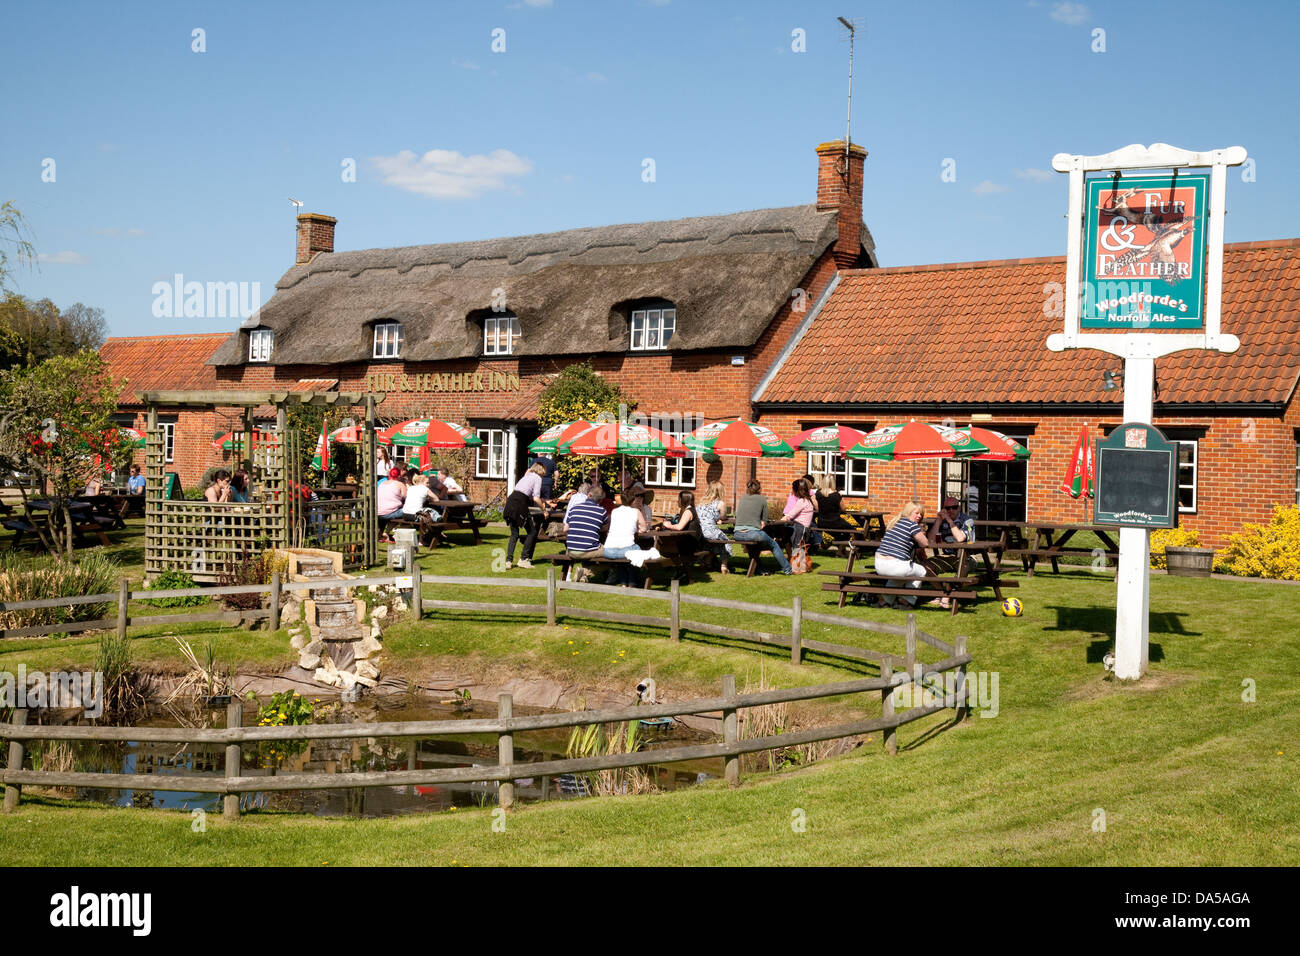 Norfolk Broads pubs inns - The Fur and Feathers Inn, Woodbastwick, Norfolk, East Anglia, UK - Stock Image